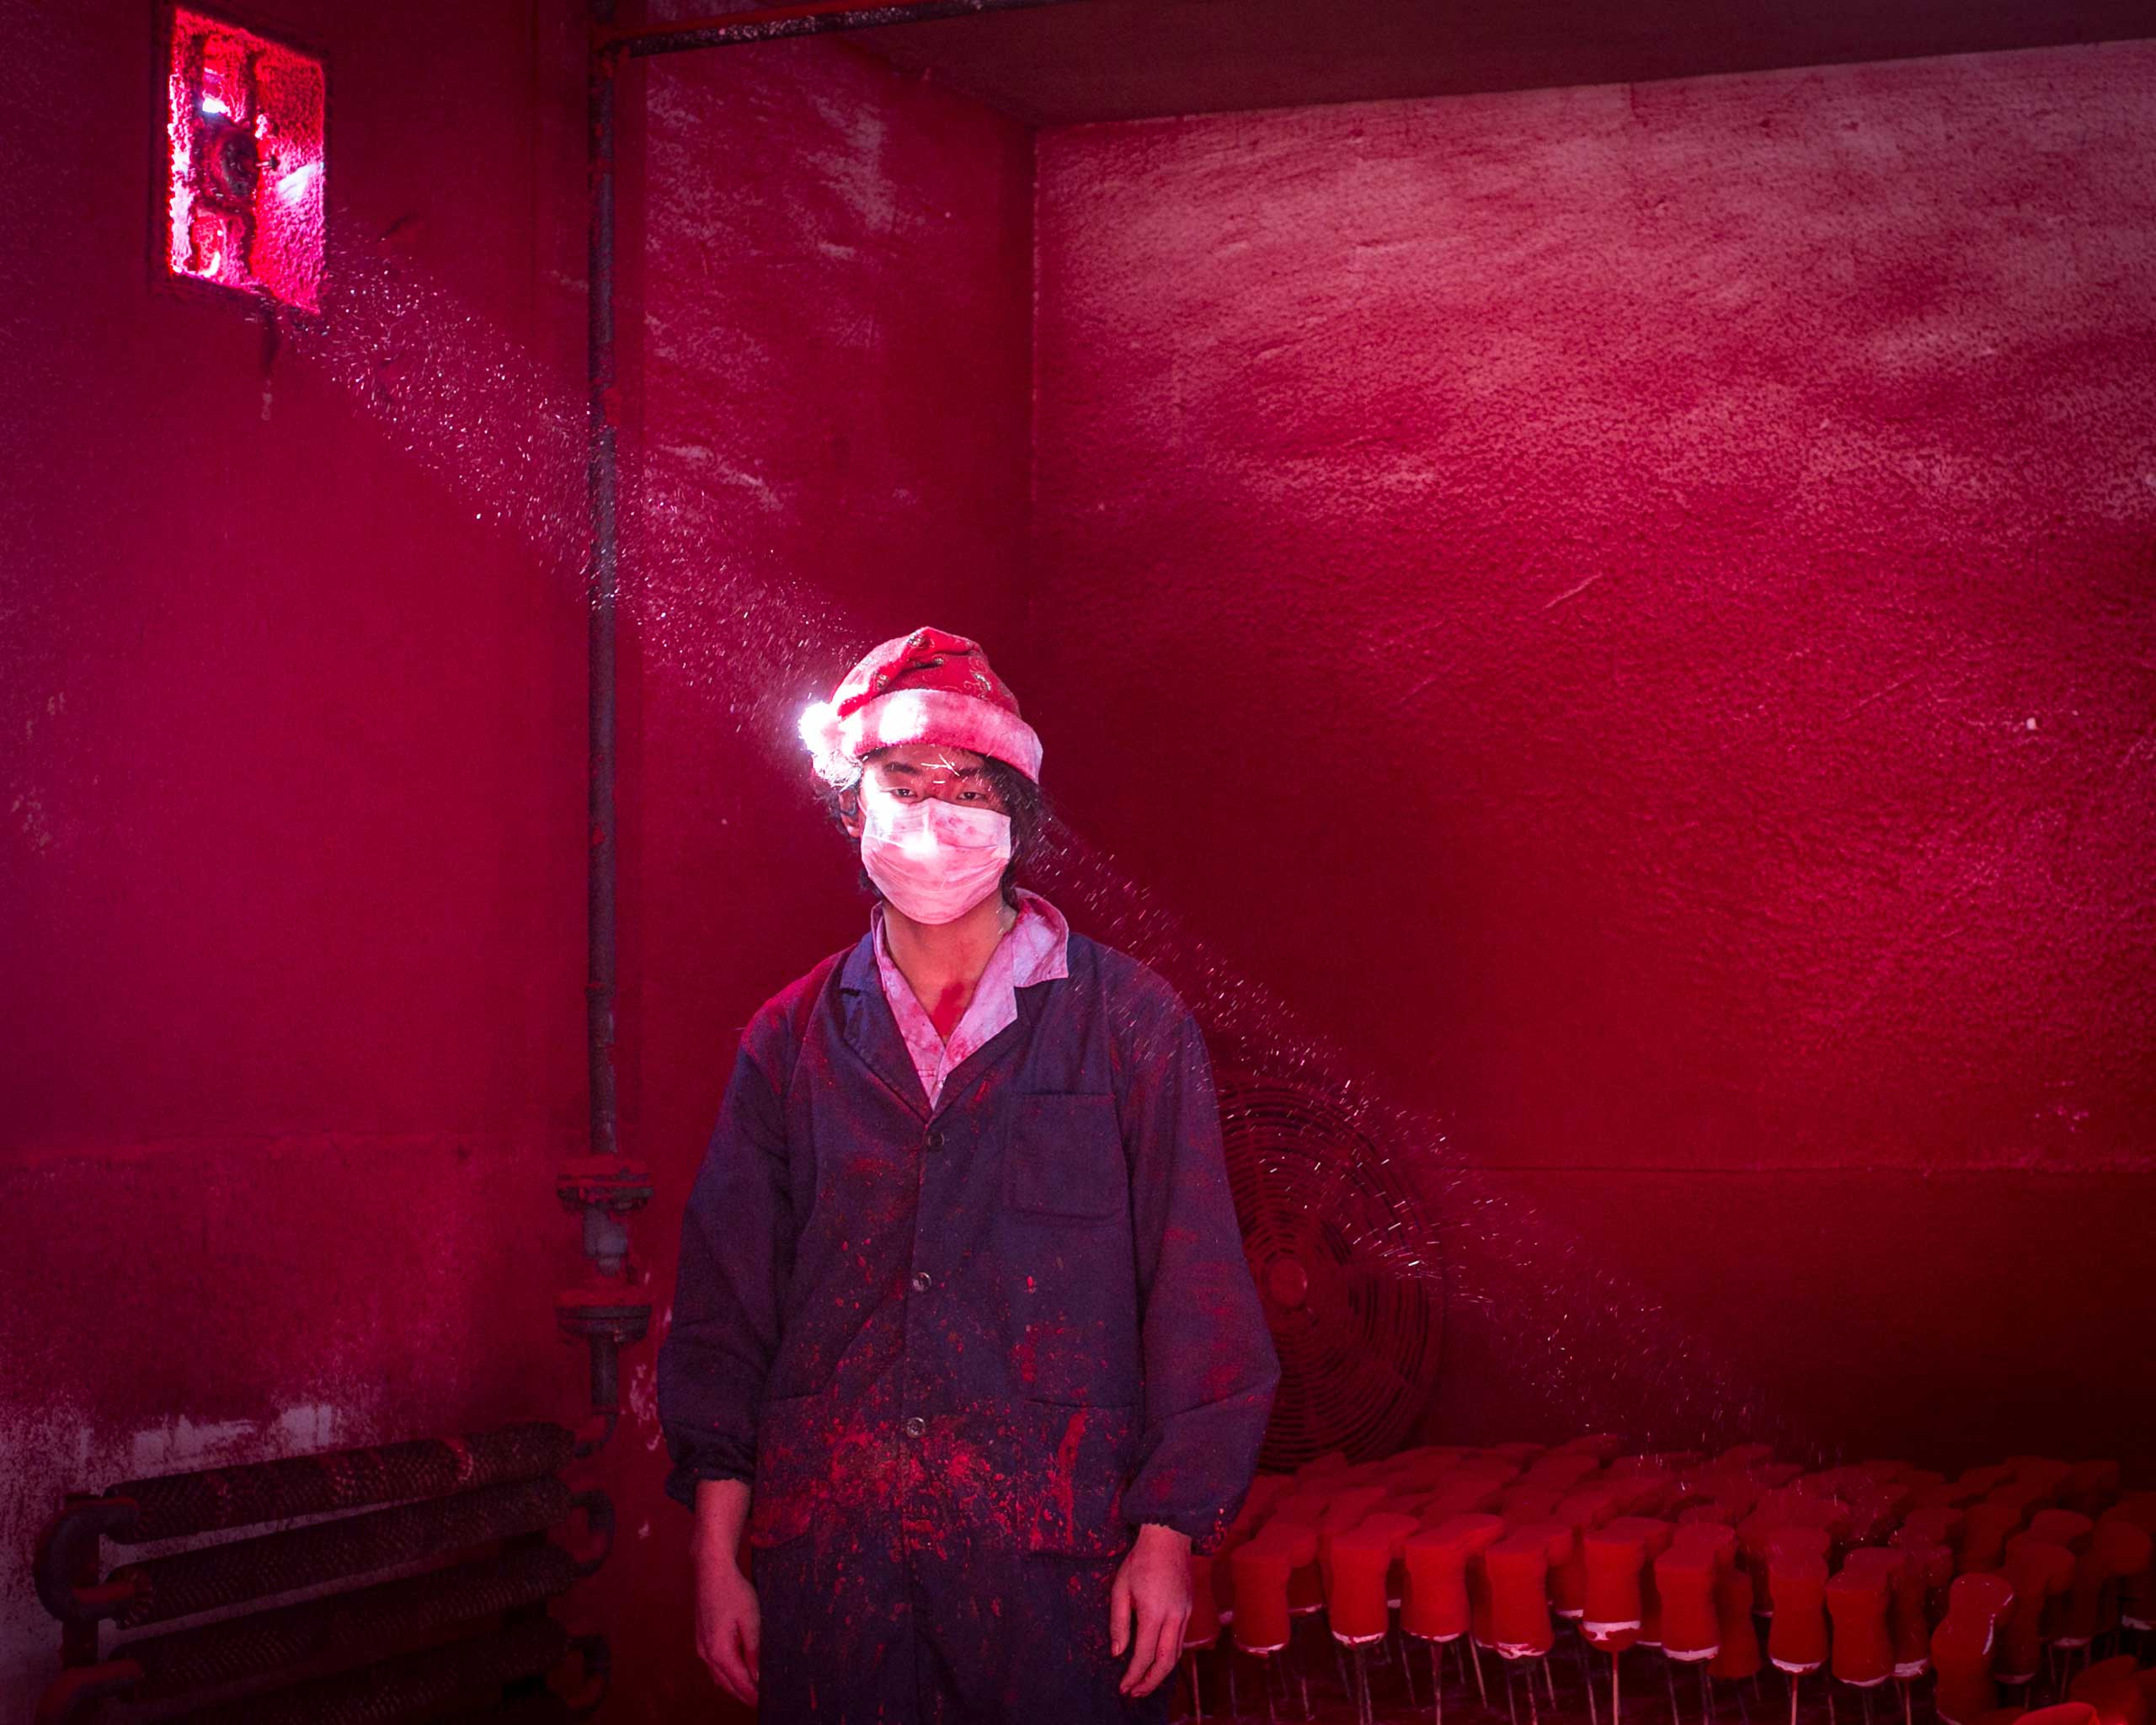 <b>Second Prize Contemporary Issues Category, Singles</b>Wei, a 19-year-old Chinese worker, wearing a face mask and a Santa hat, stands next to Christmas decorations being dried in a factory as red powder used for coloring hovers in the air.